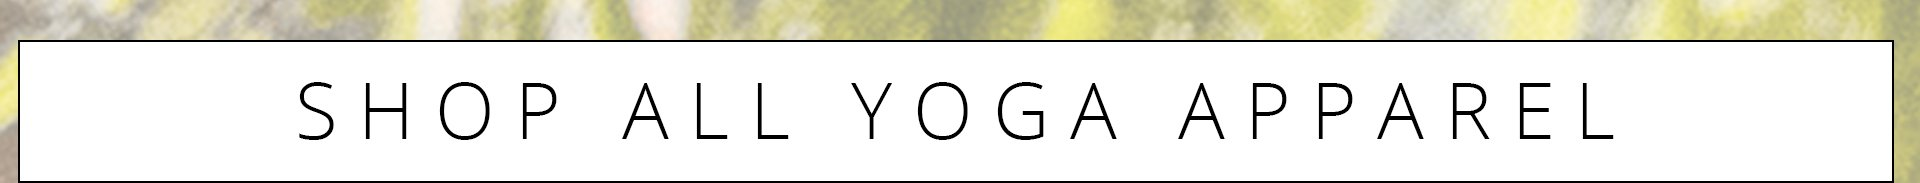 Shop All Yoga Apparel